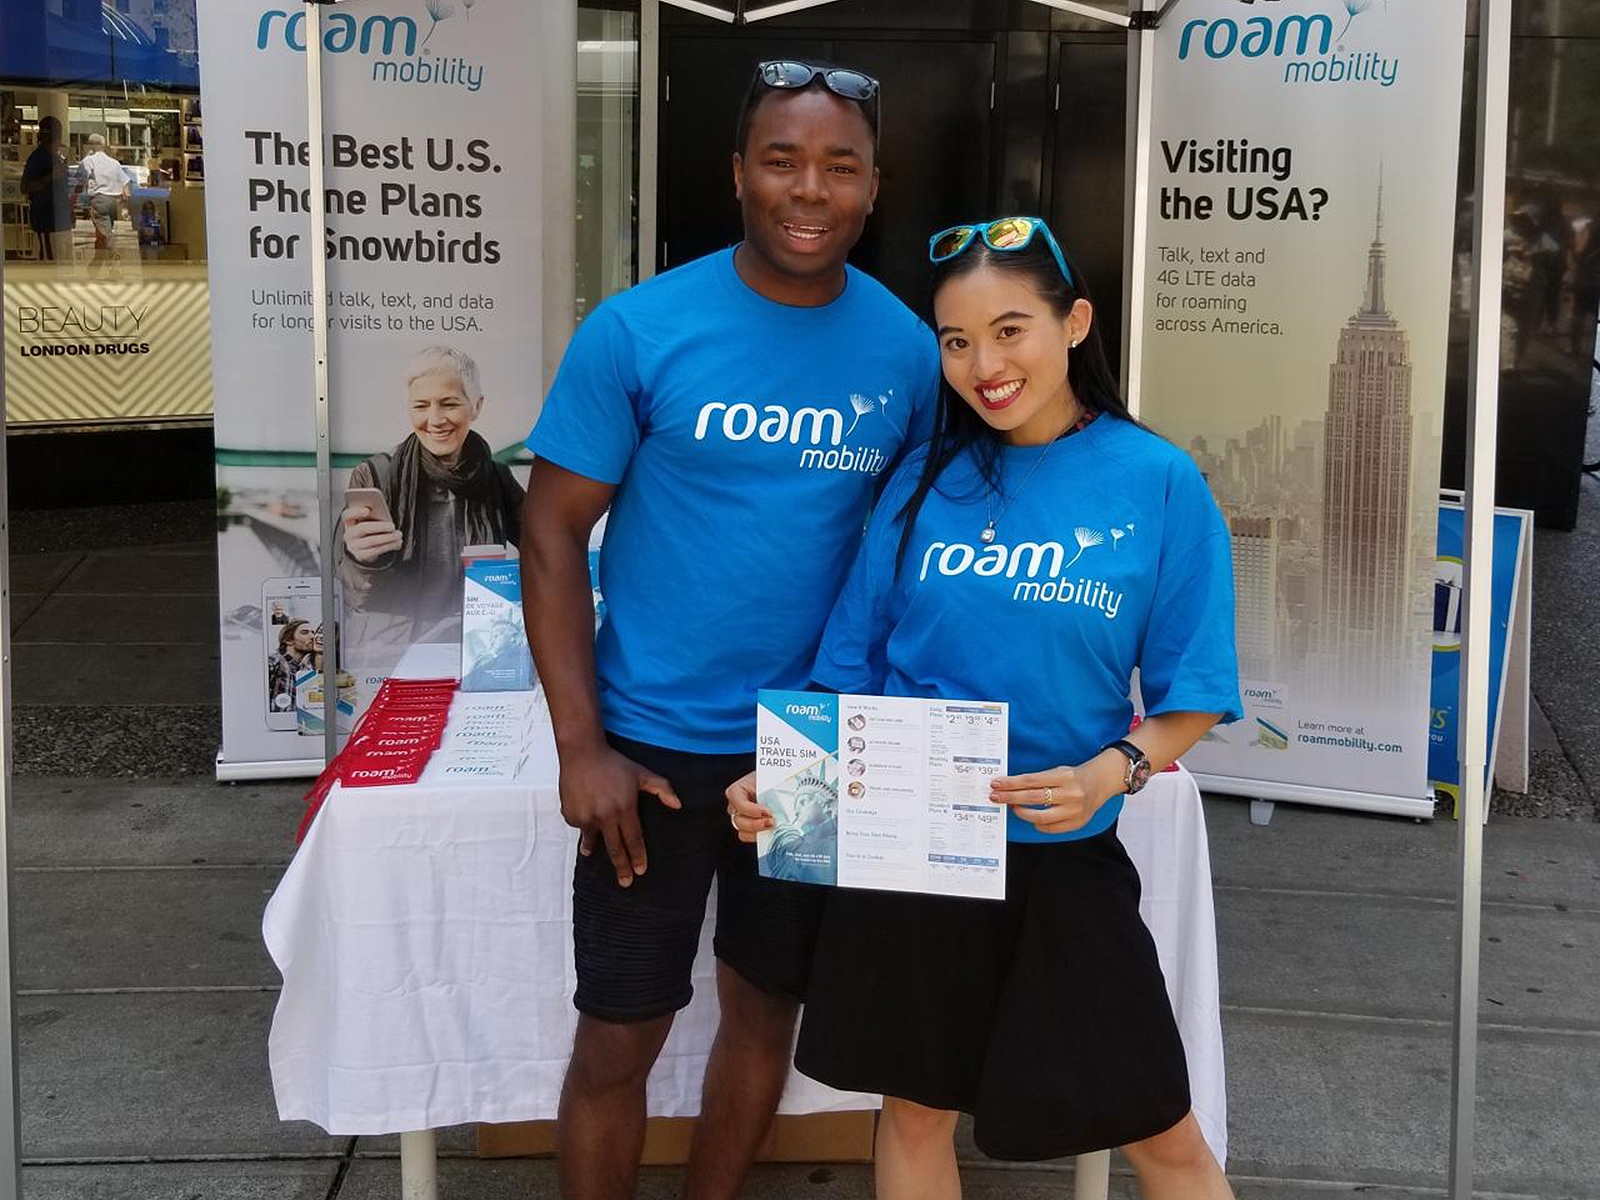 Roam Mobility Street Marketing - UB Marketing